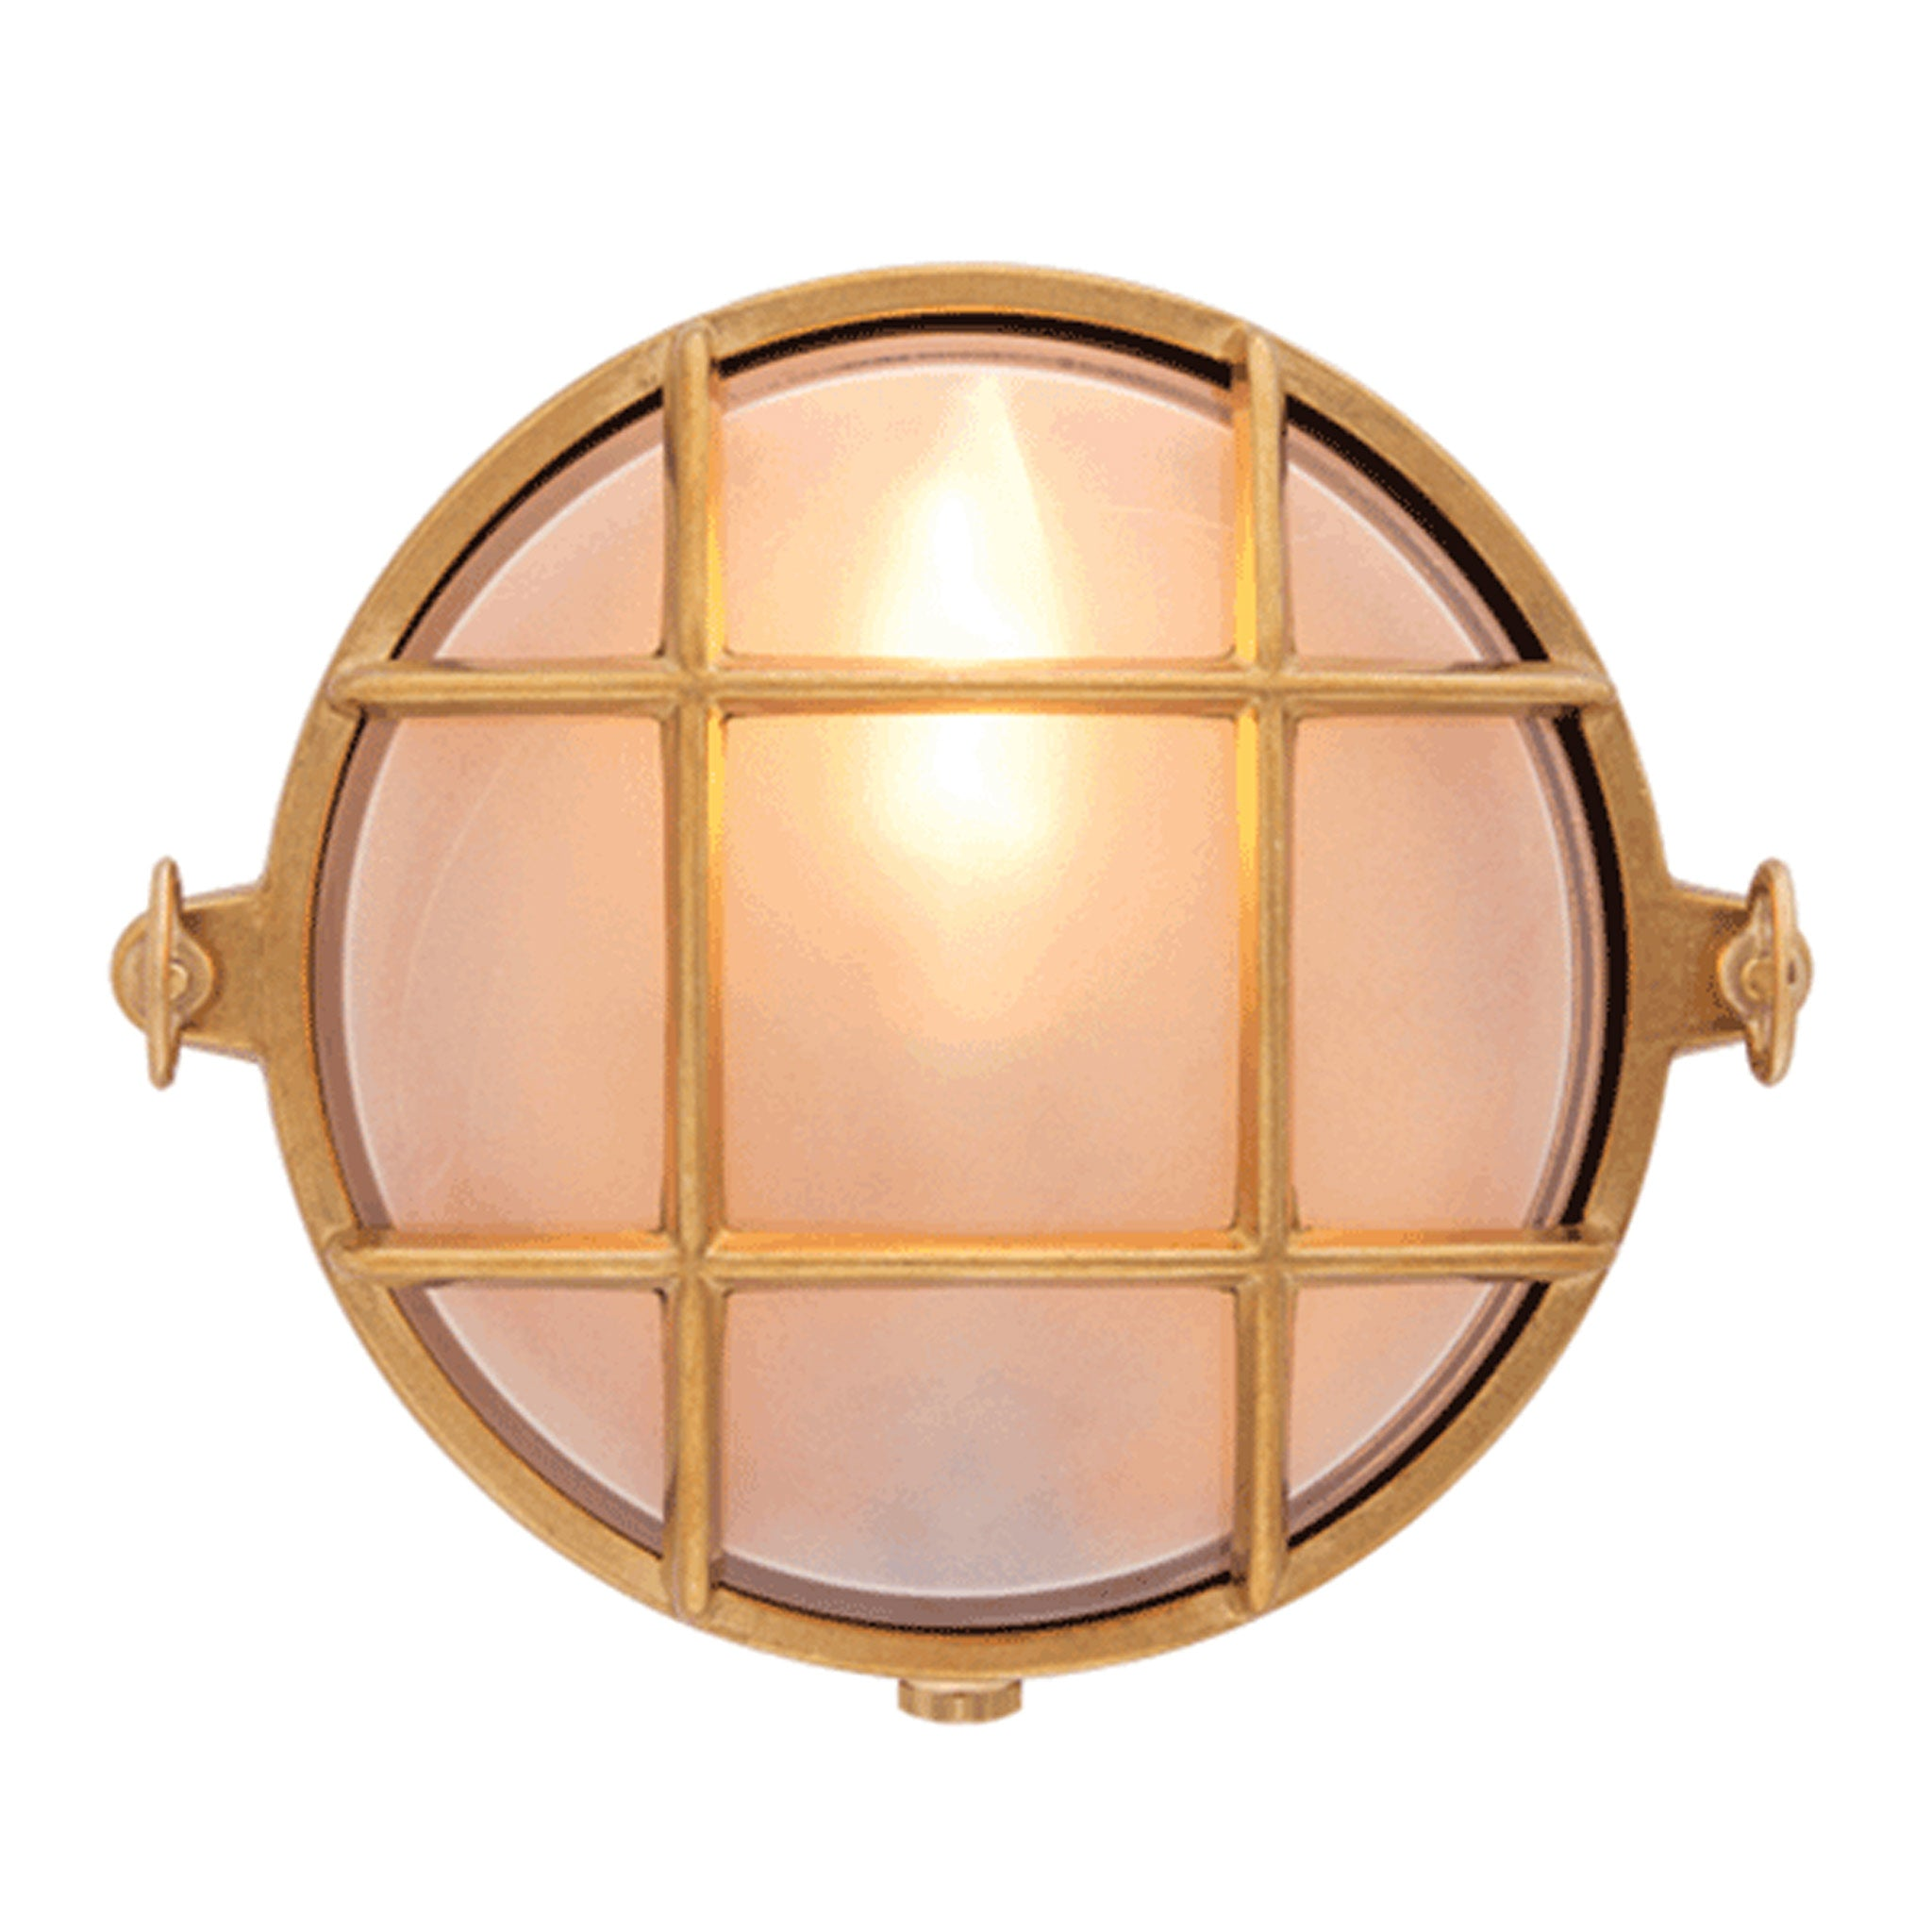 Small Round Bulkhead Light - 155 mm diameter